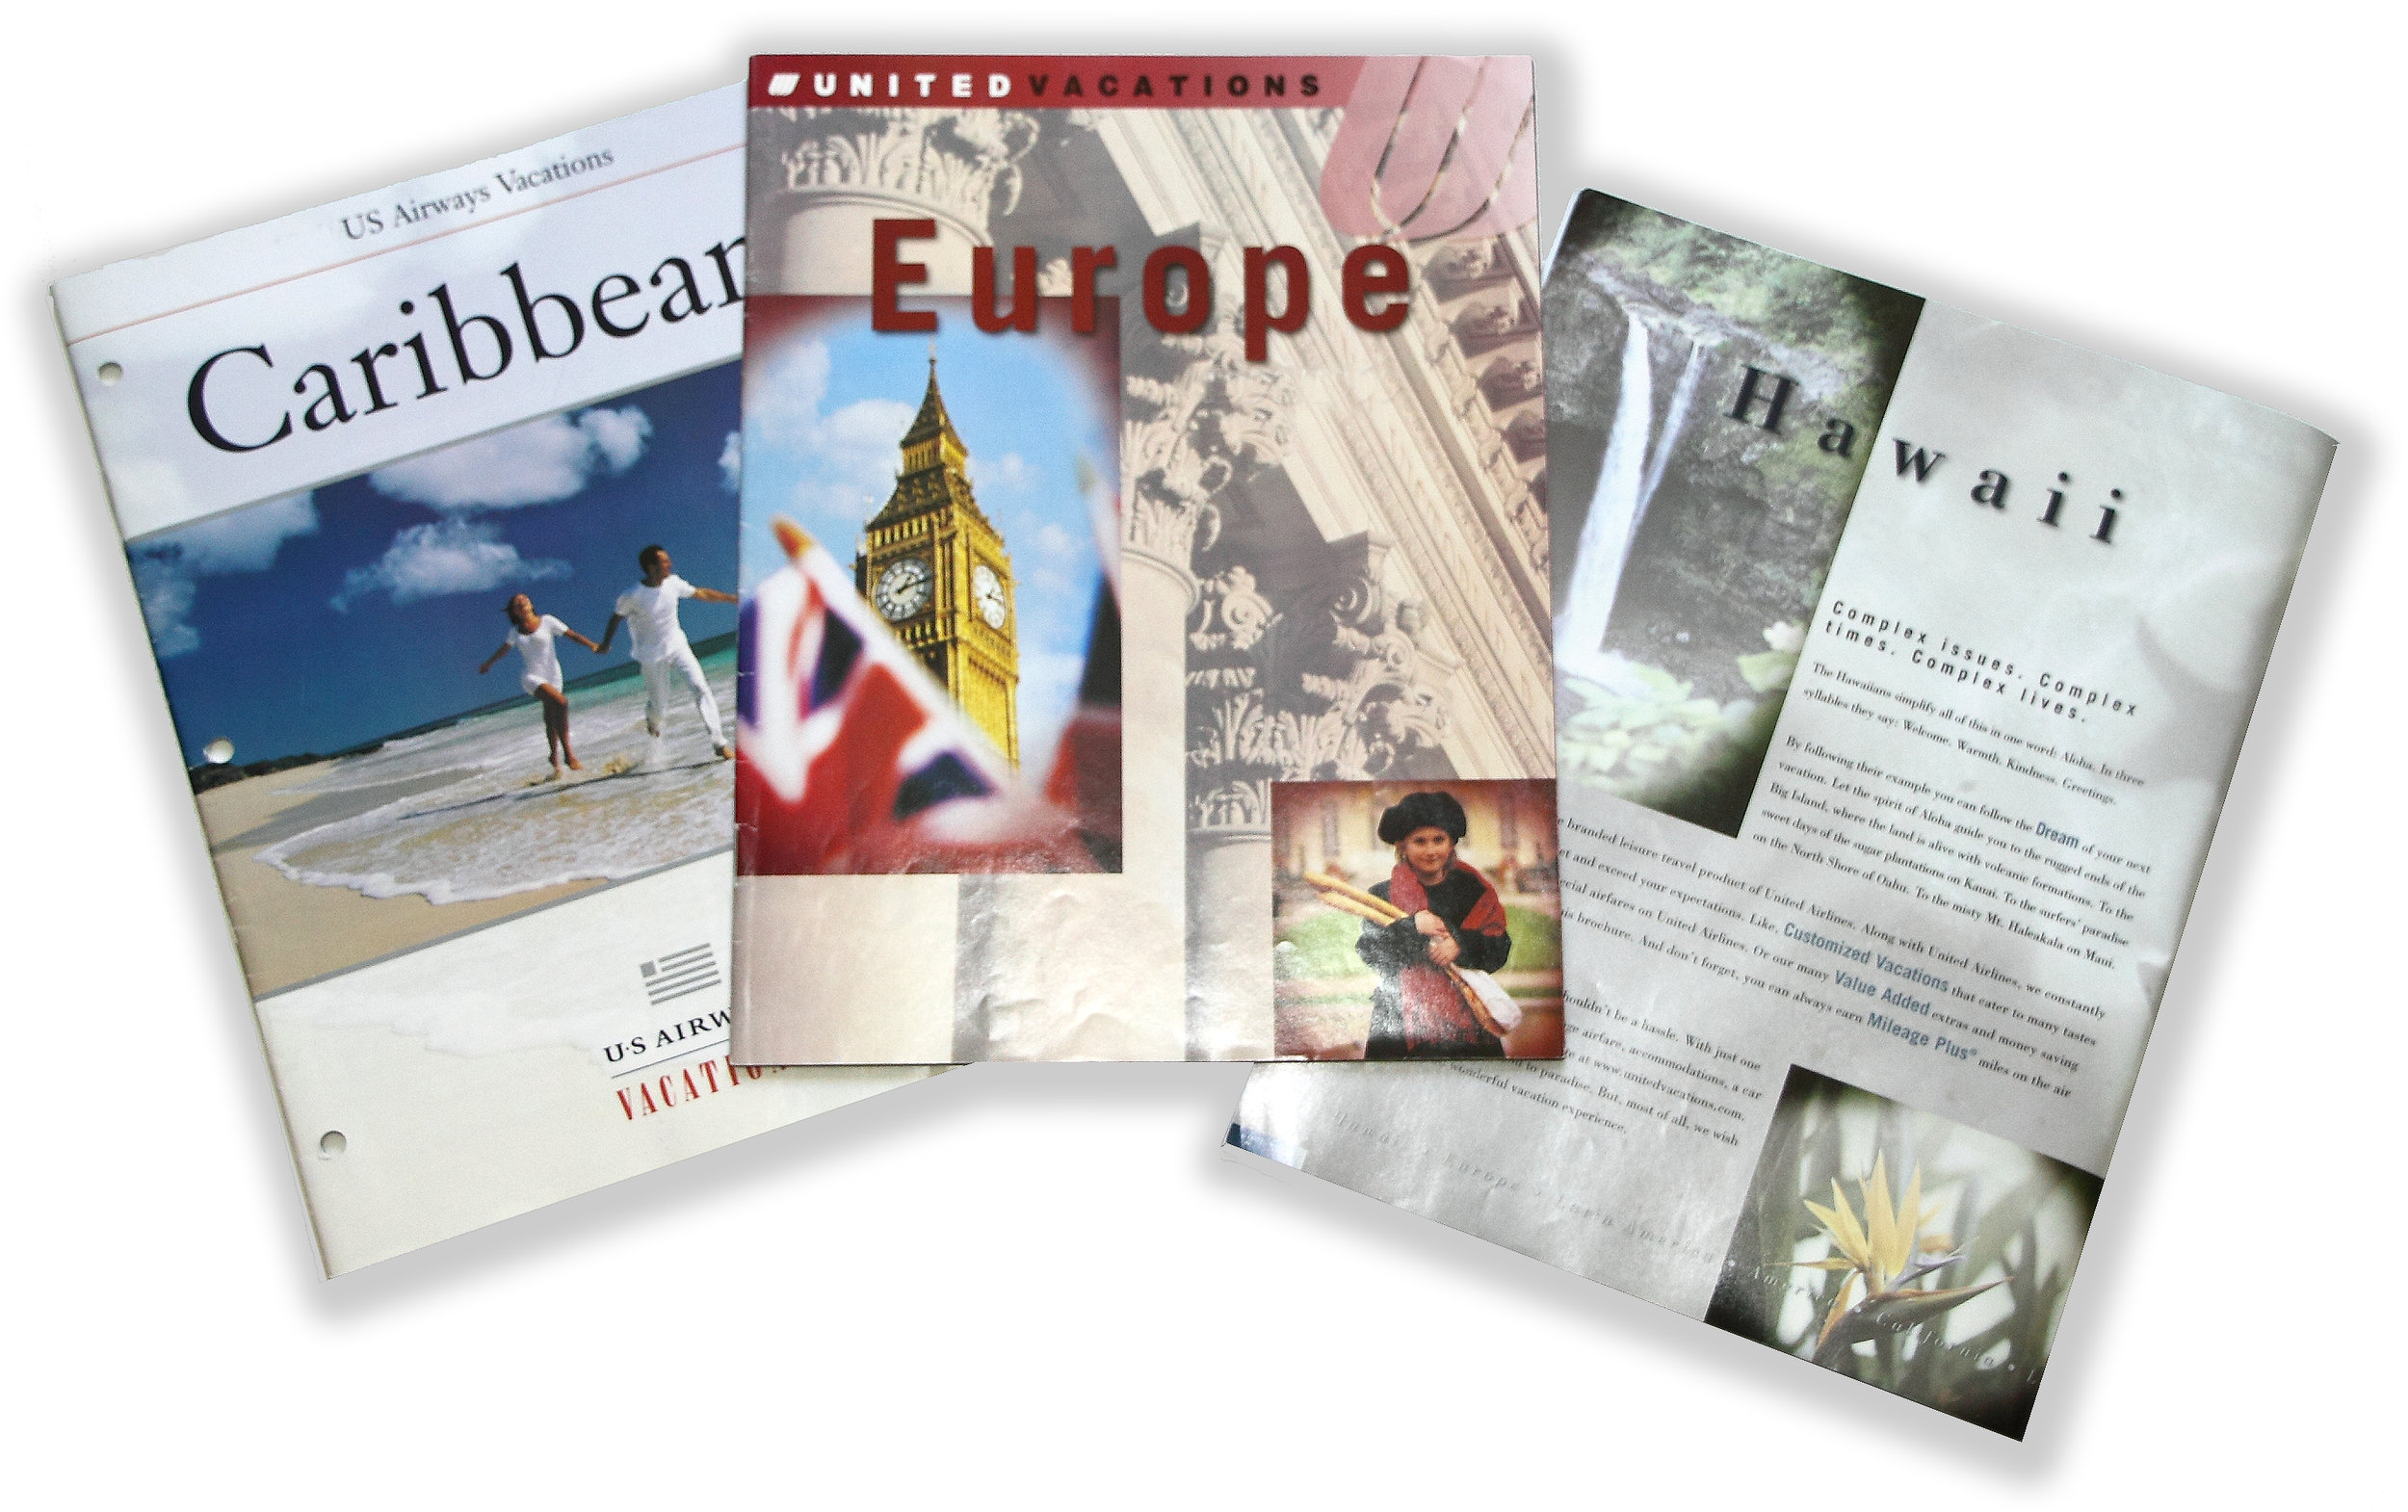 USAIRWAYS VACATIONS + UNITED VACATIONS Award-winning art direction, design and photo selection led to a series of award-winning travel catalogs that included multiple world-wide destinations.